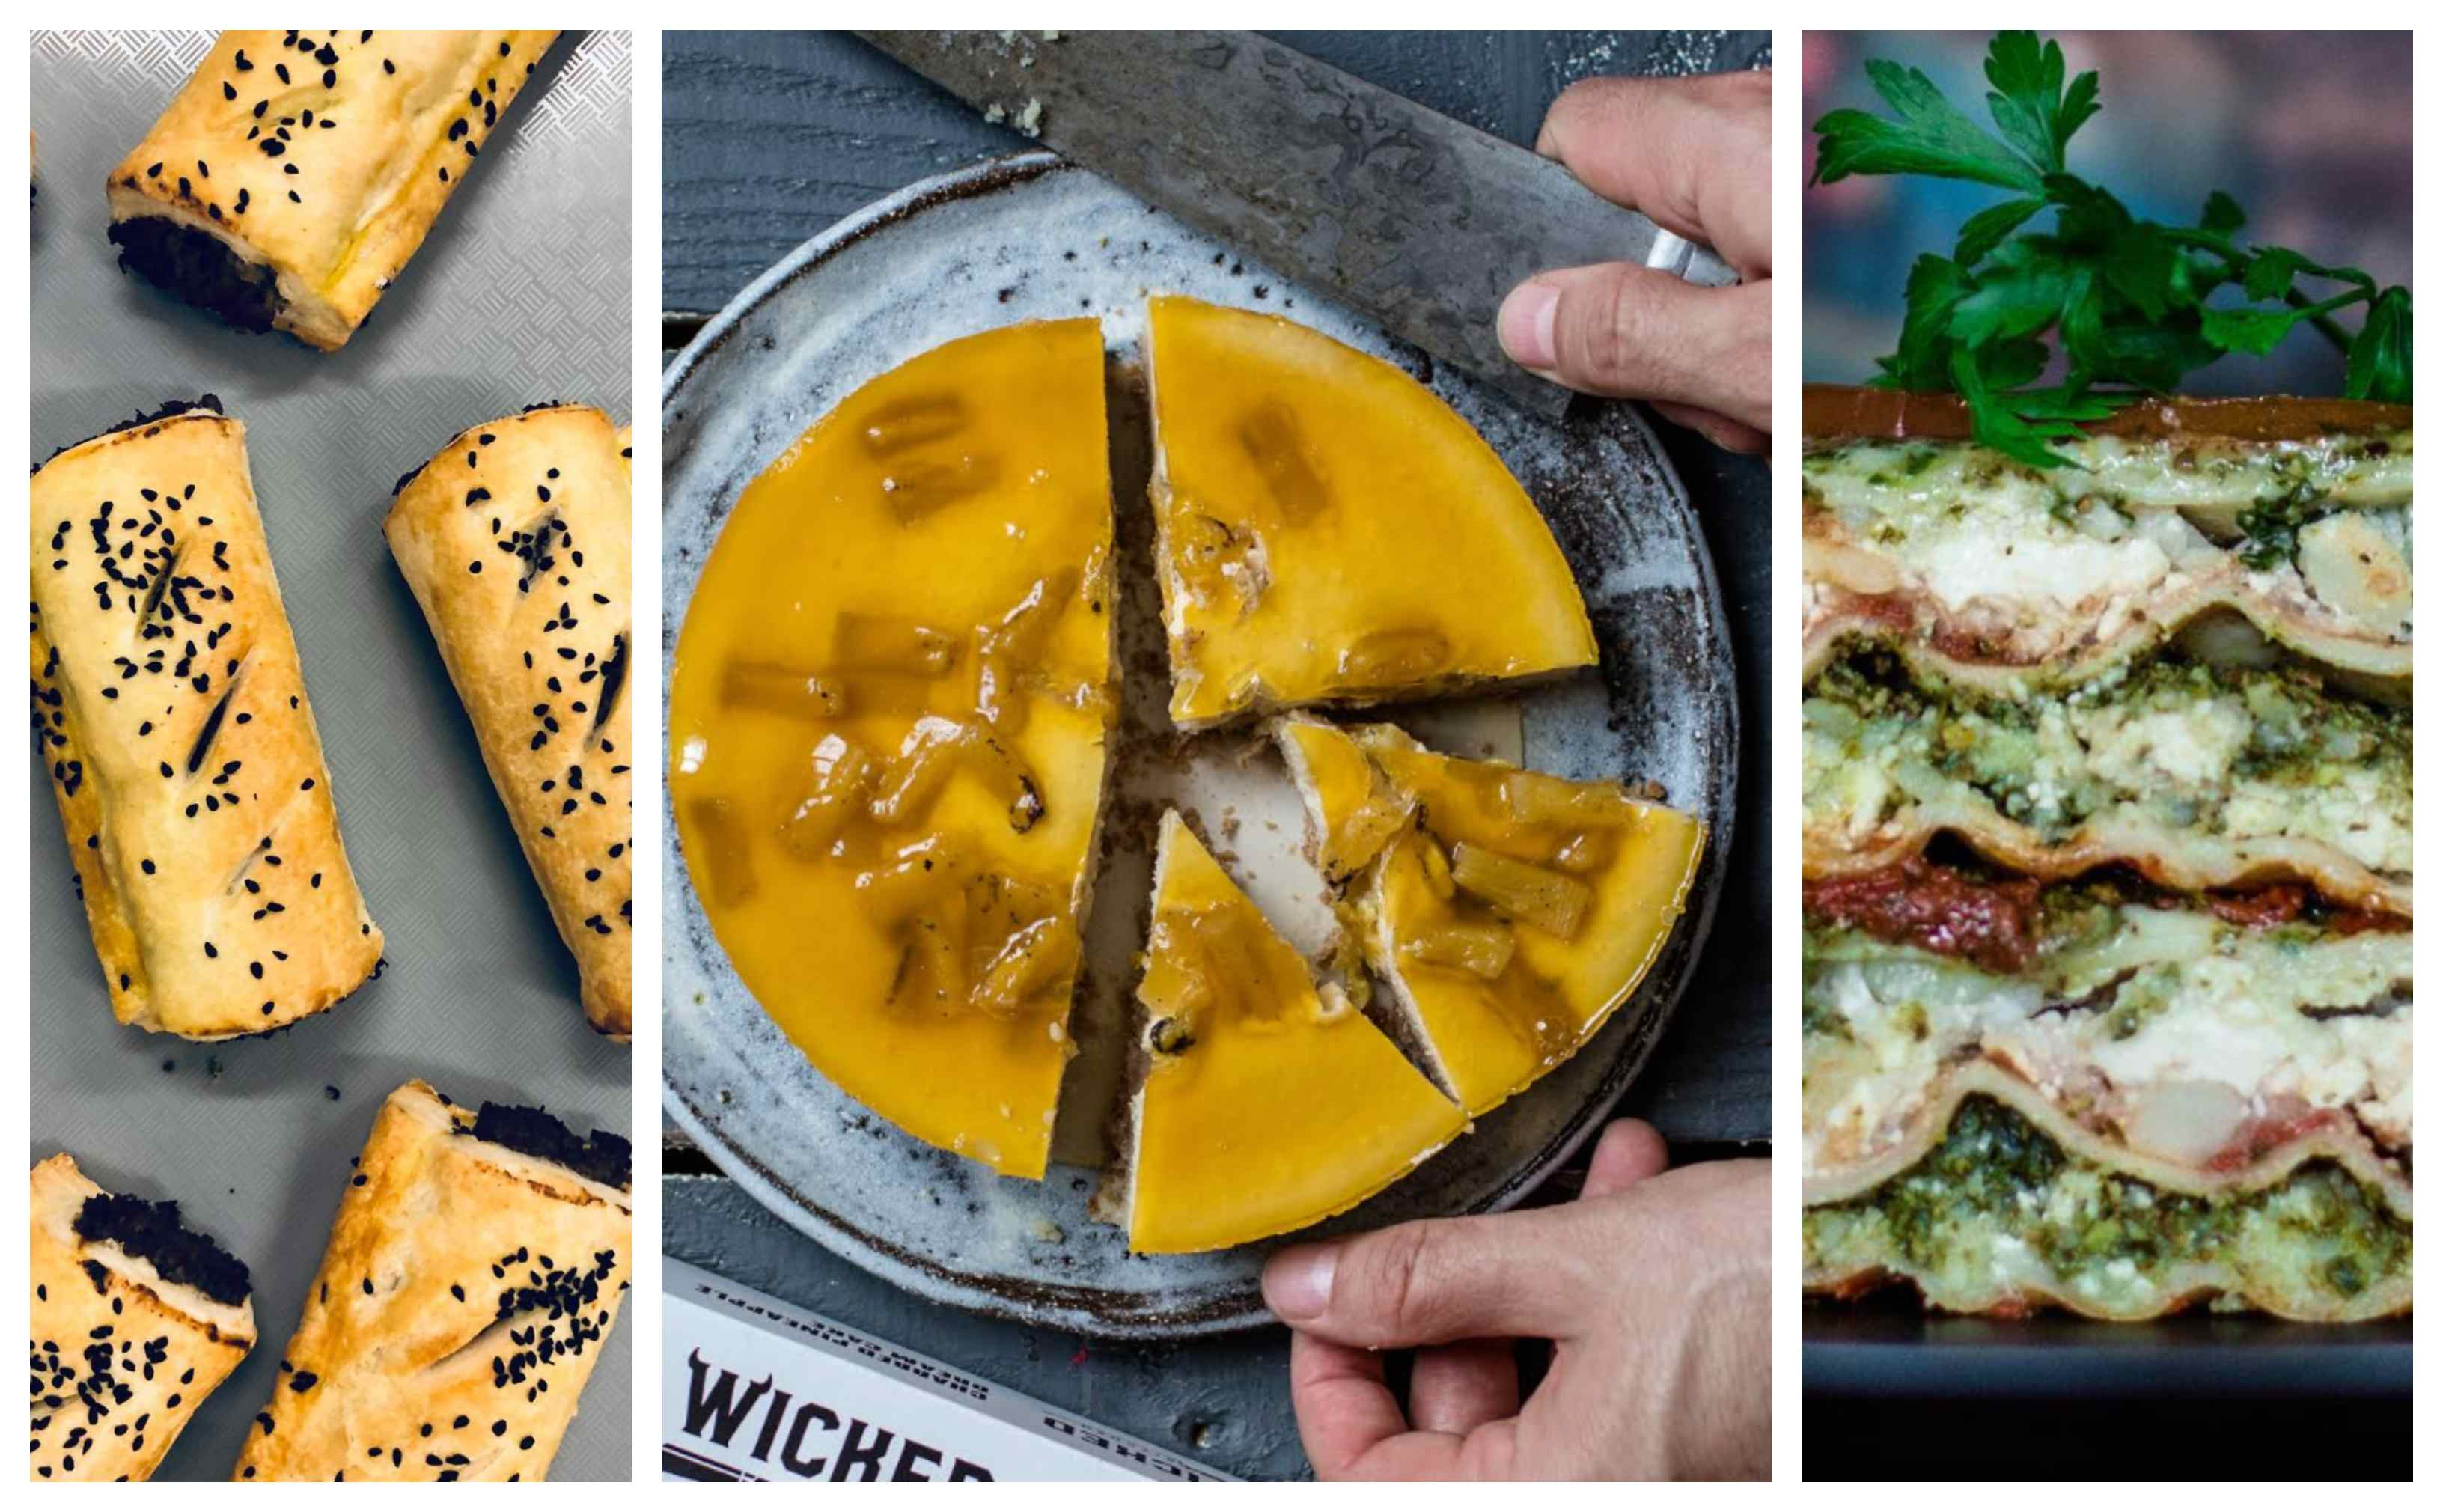 Vegan Wicked Kitchen dishes from Tesco